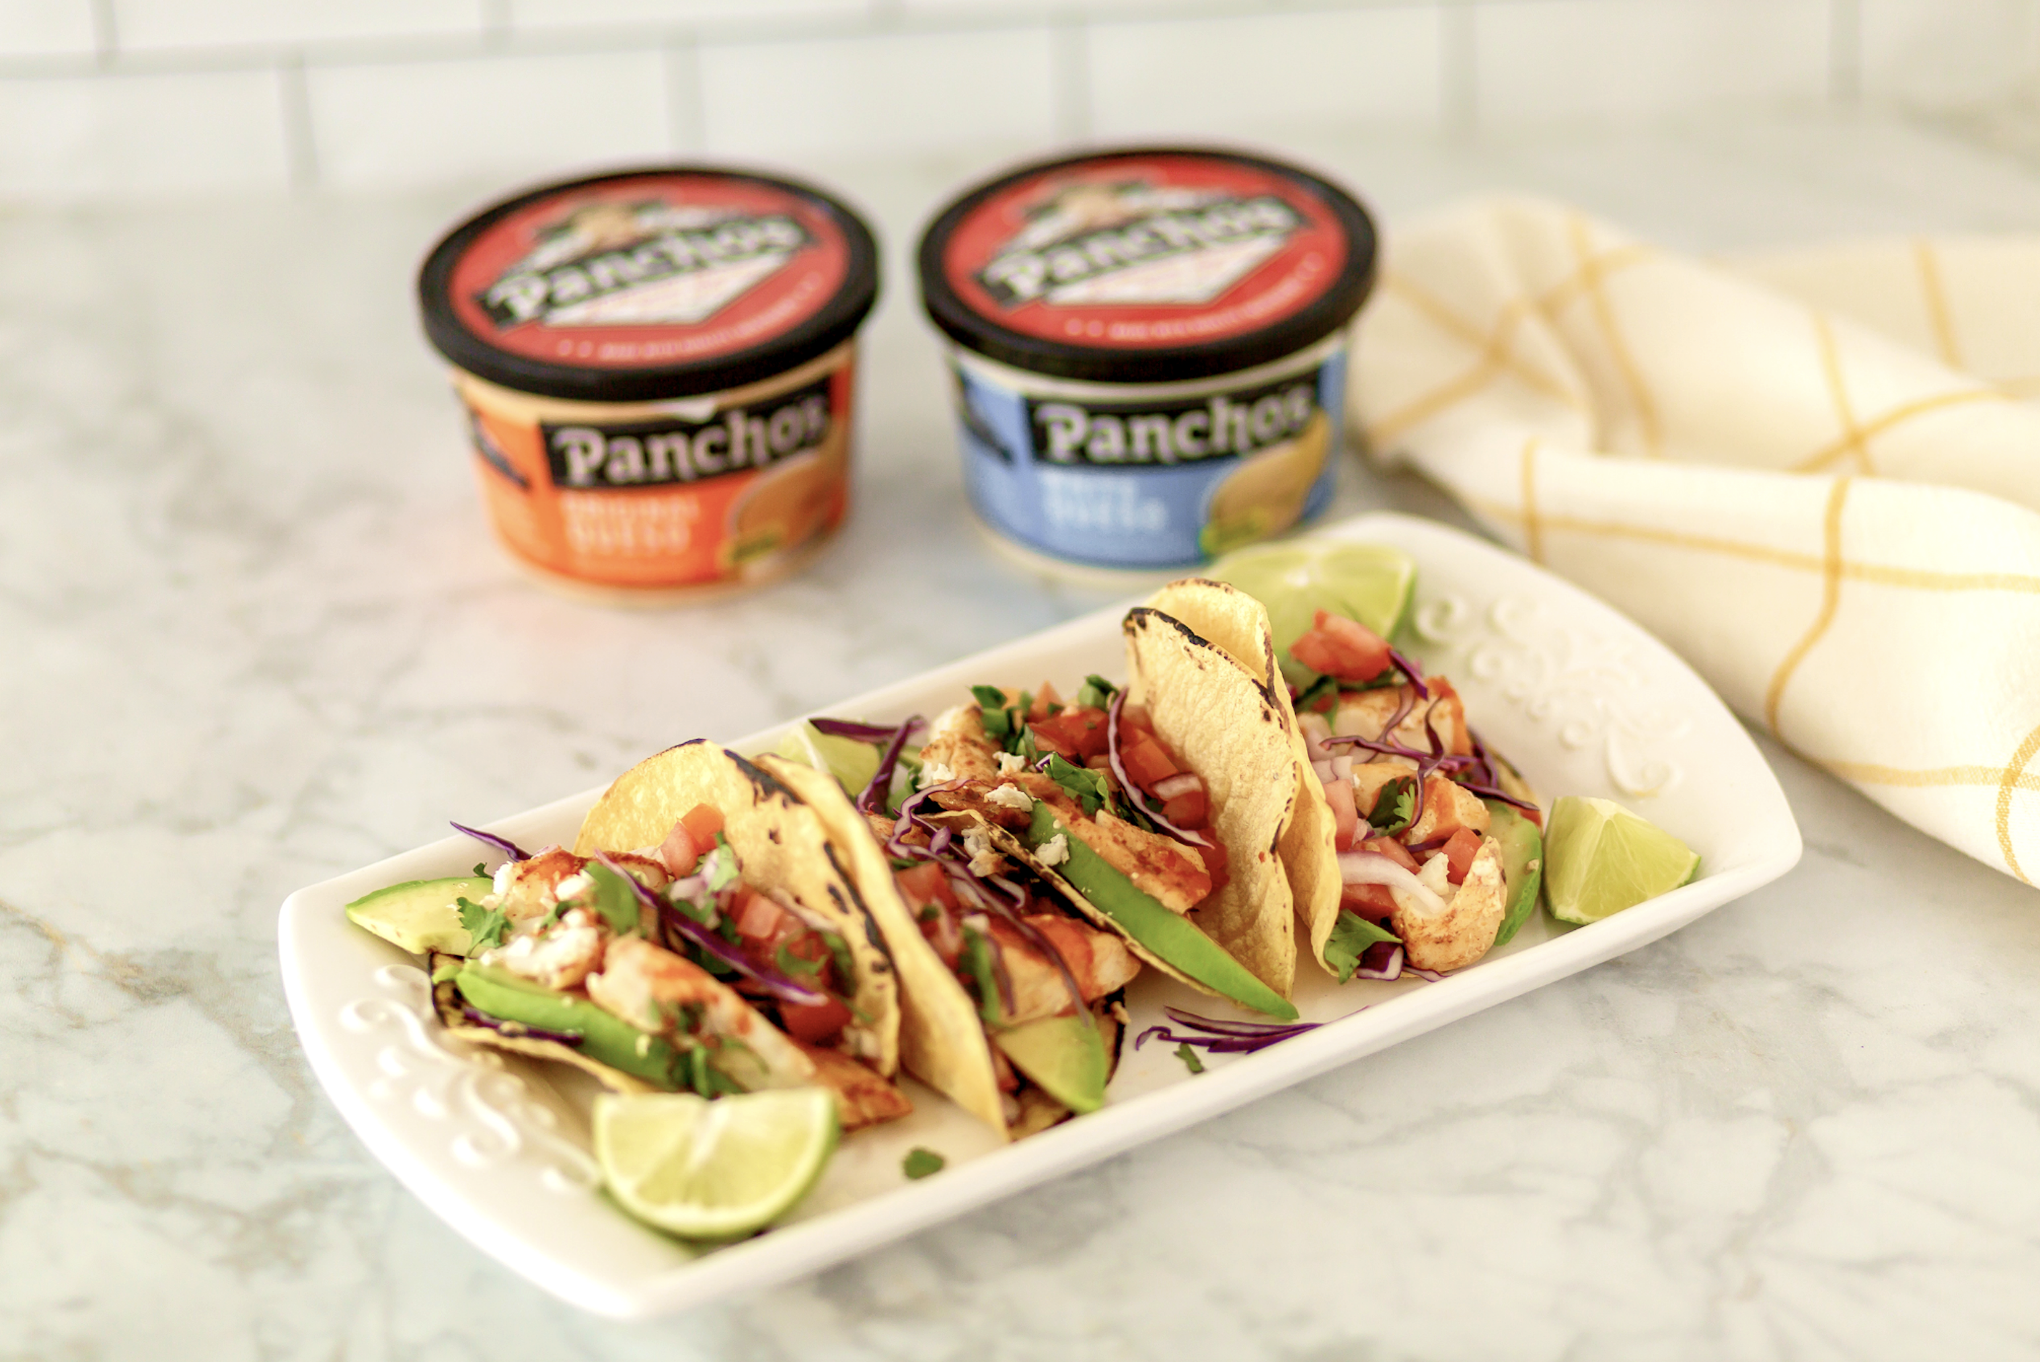 Burgers, hotdogs and s'mores may be on almost every barbecue menu, but the newest addition to our family's outdoor meals and snacks is Pancho's Queso Dip.